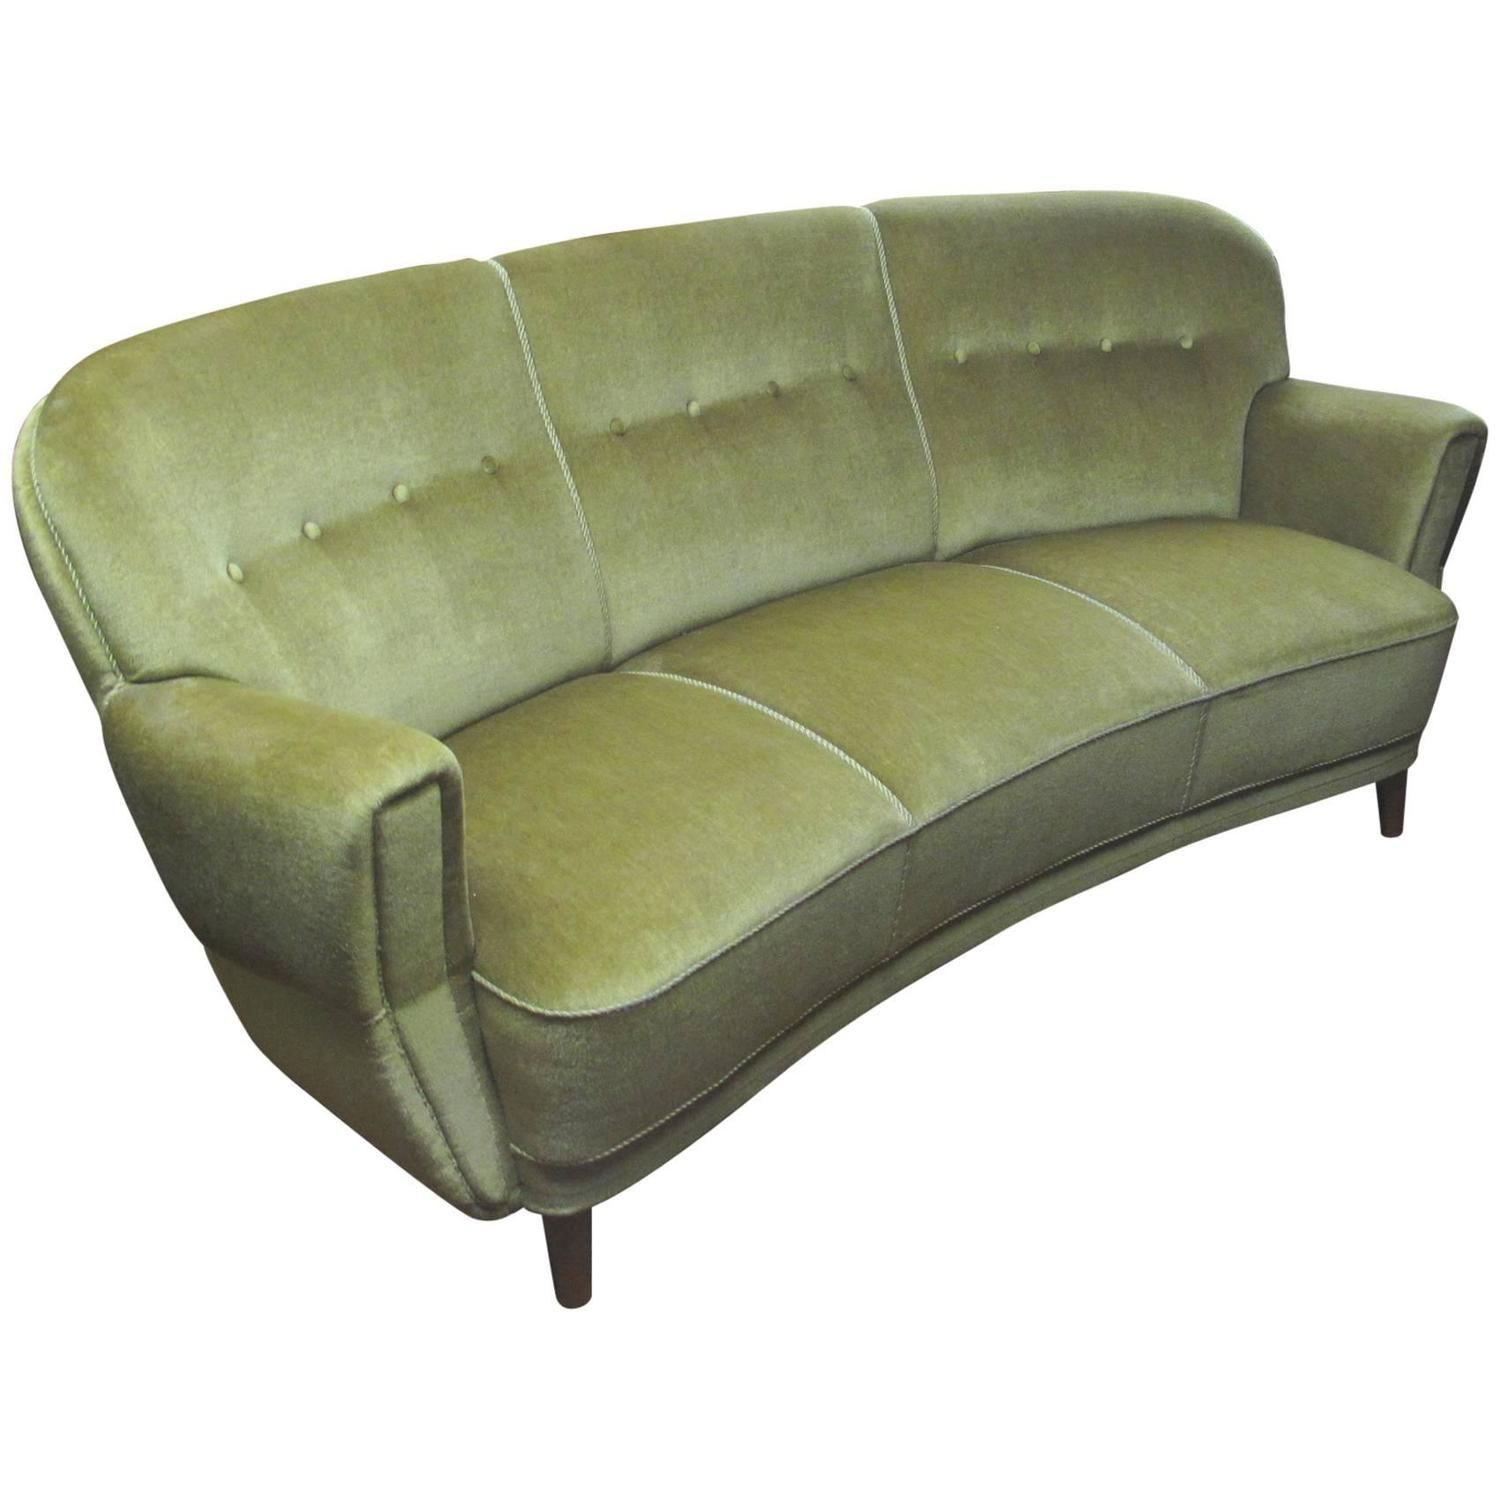 Danish 1930S 1940S Curved Mohair Upholstered Sofa - From A Unique